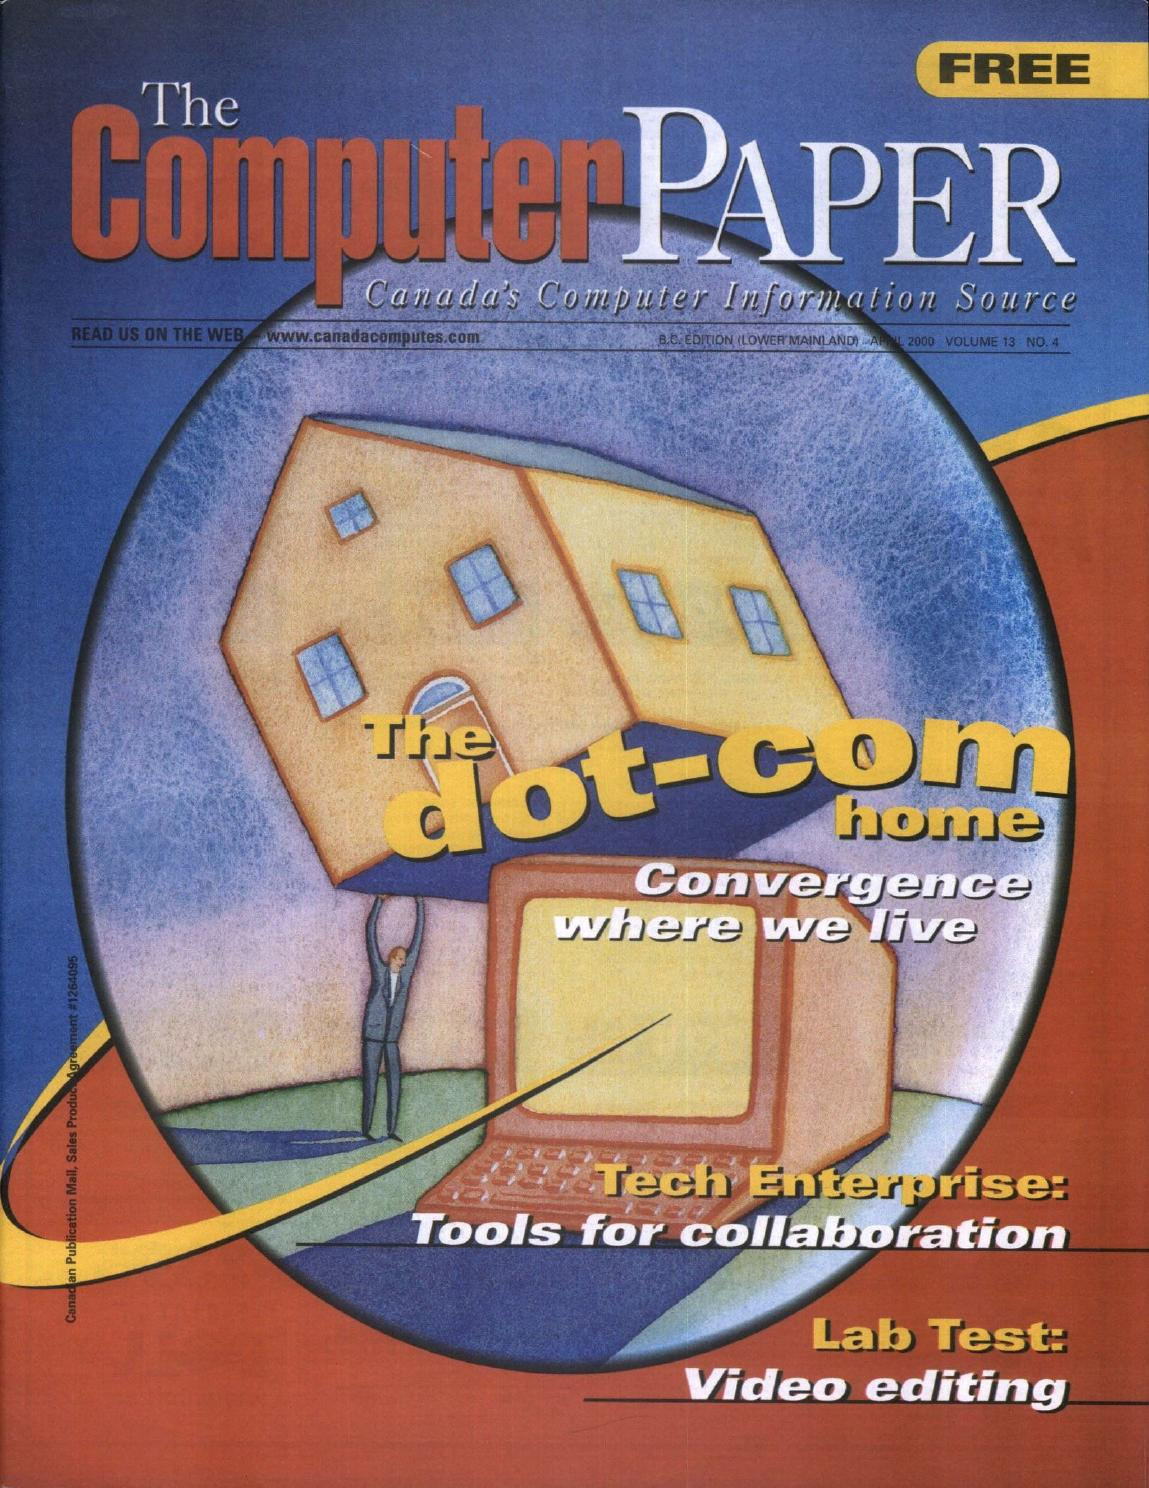 dbac592b6 2000 04 The Computer Paper - BC Edition by The Computer Paper - issuu